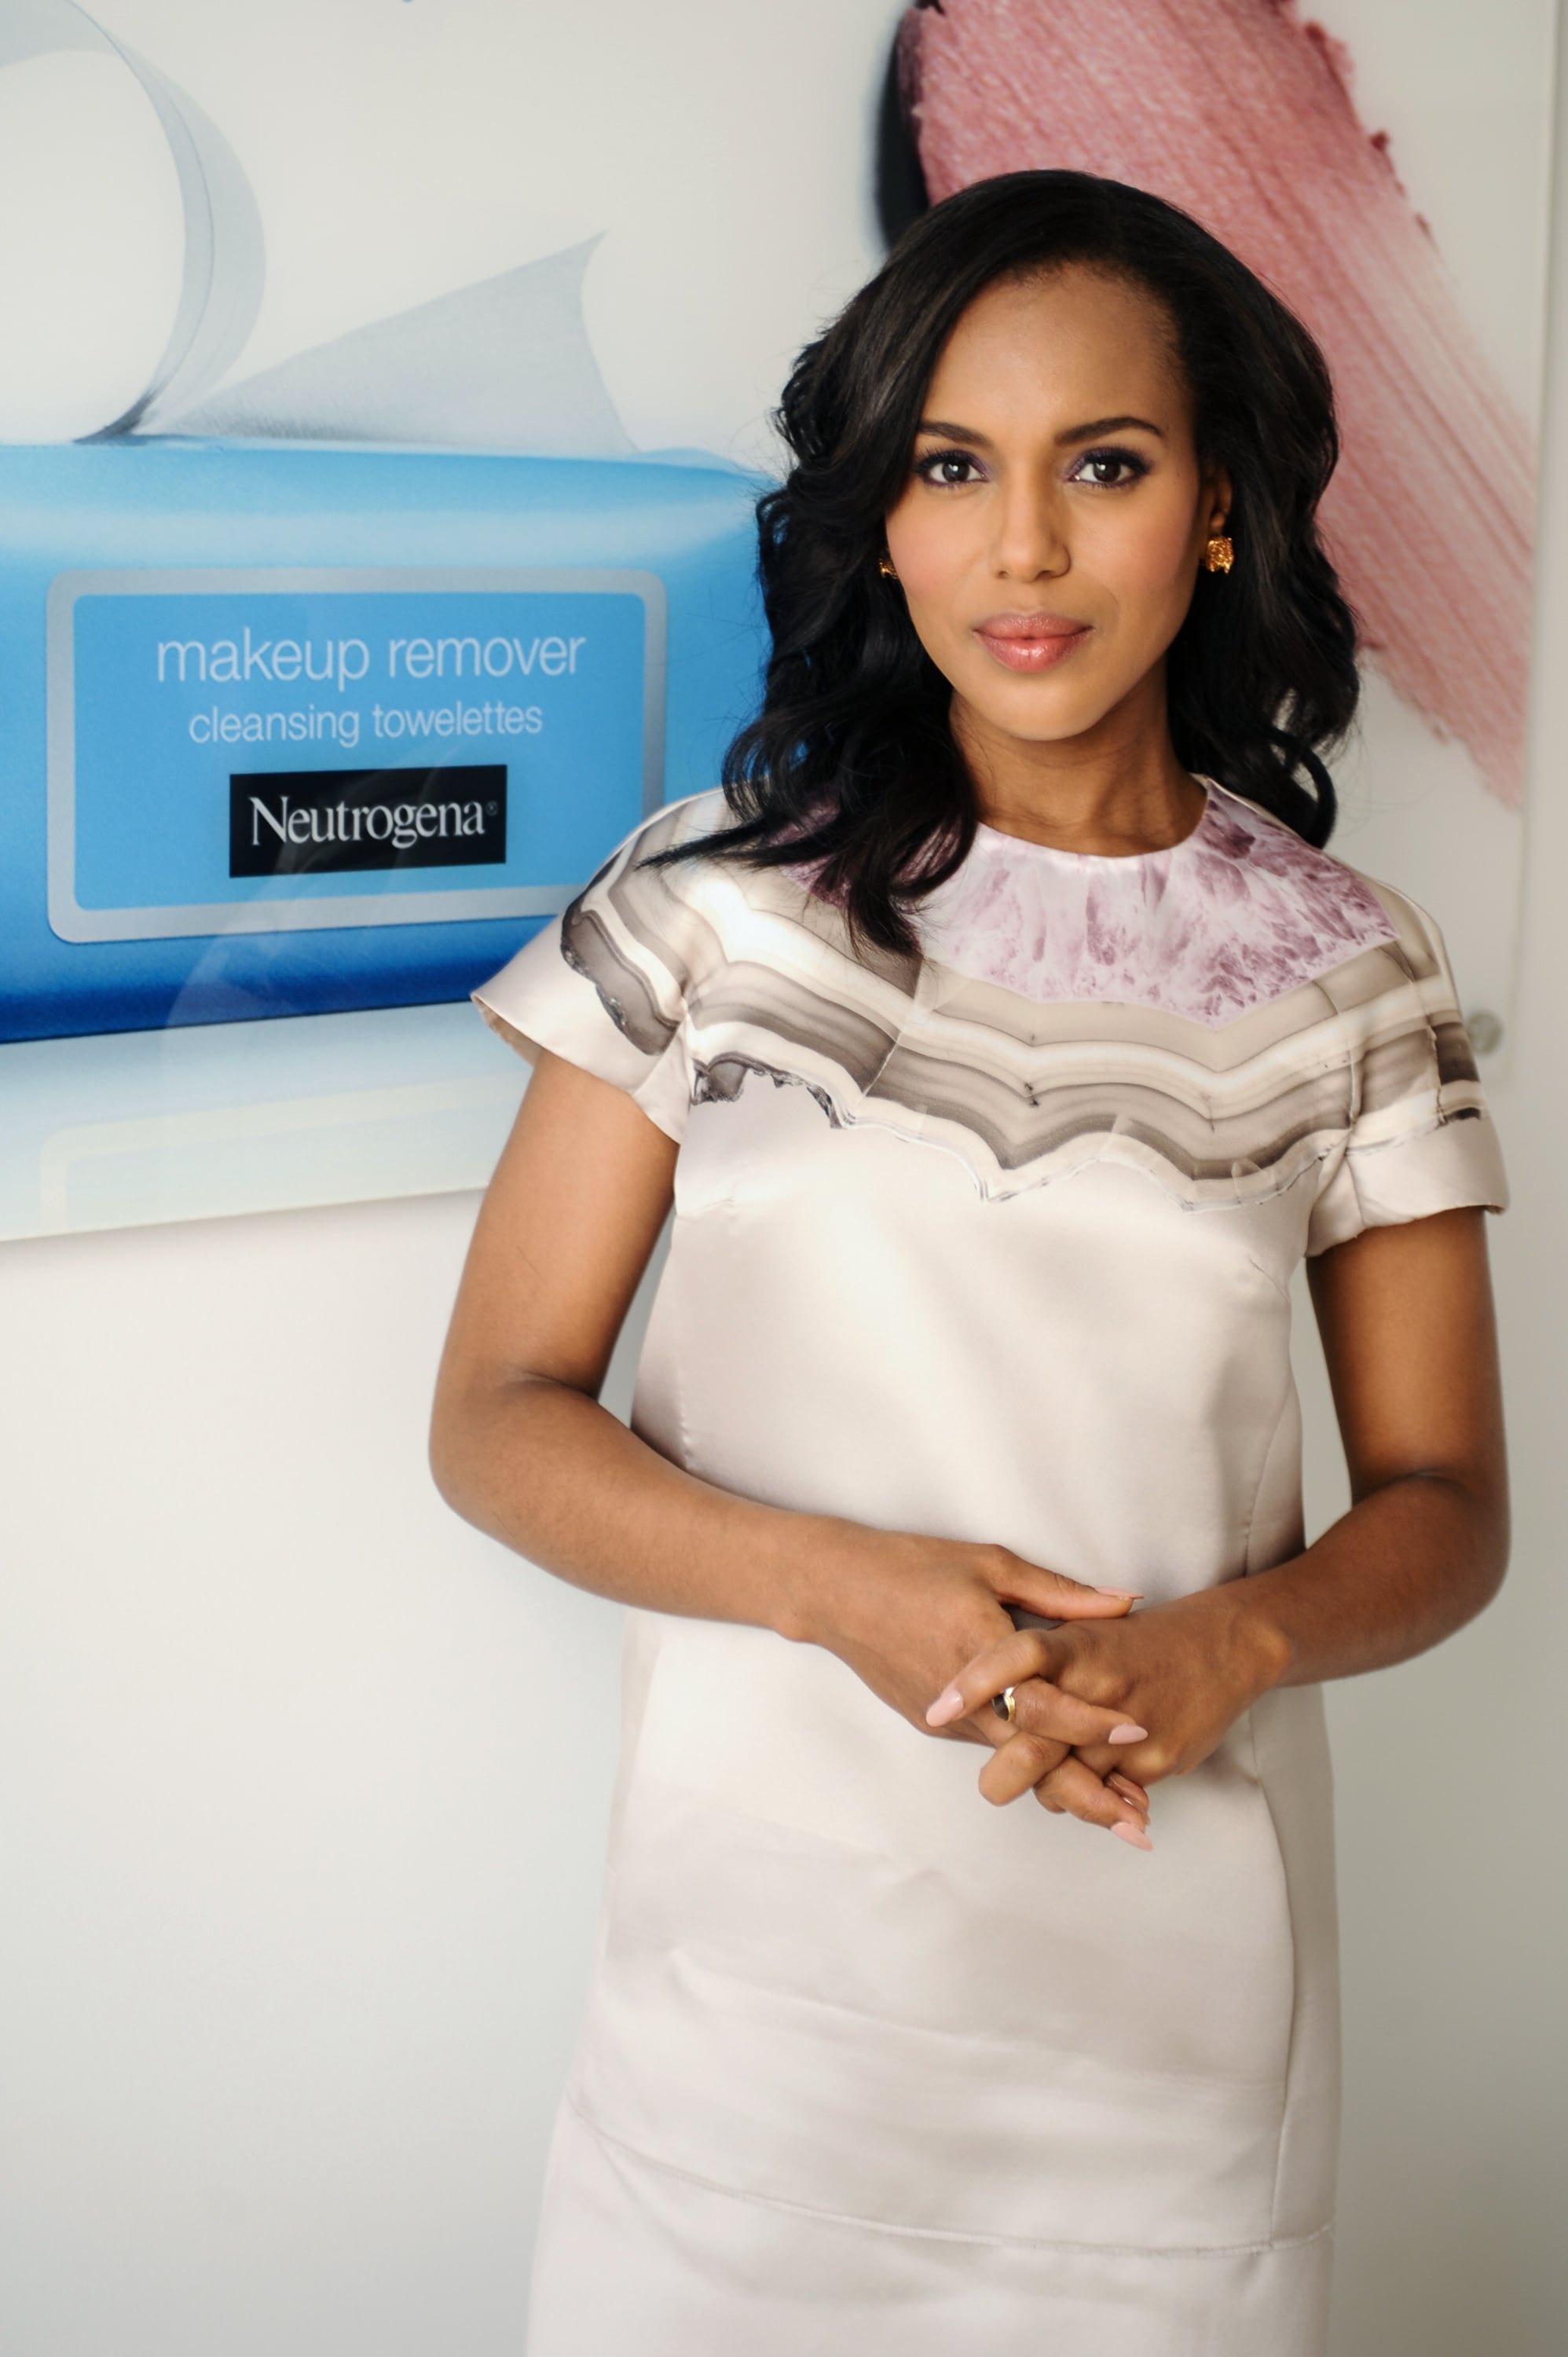 In October, Kerry joined Neutrogena as a creative consultant and spokeswoman, though you won't see her in ads until 2014.